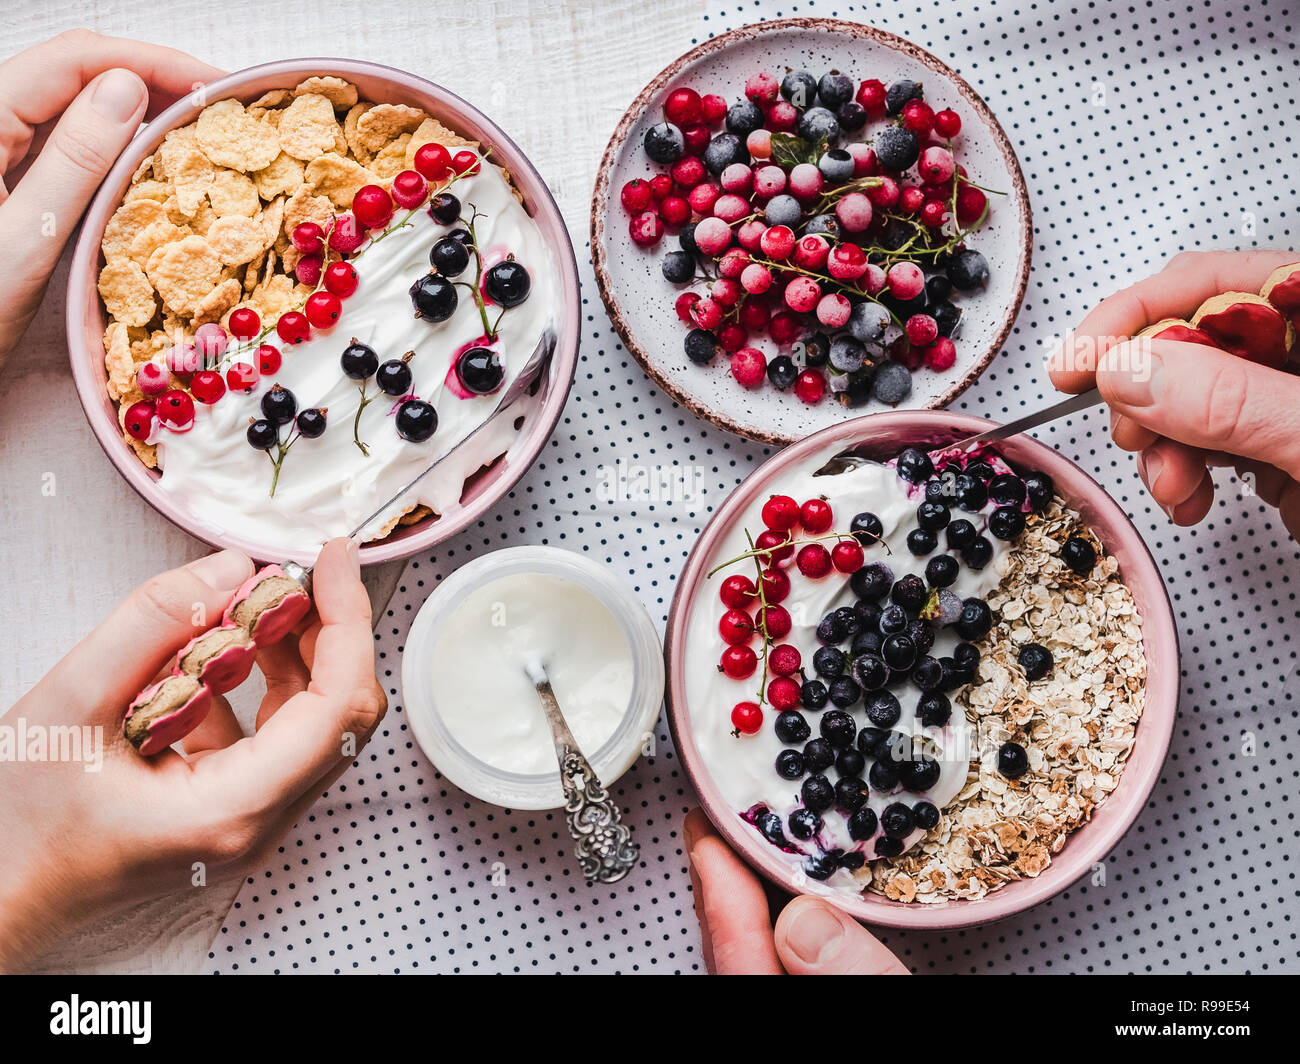 Festive and healthy breakfast for loved ones. Vintage bowls, cornflakes, granola, yogurt, fresh berries and hands of a young couple. Close-up, top vie Stock Photo